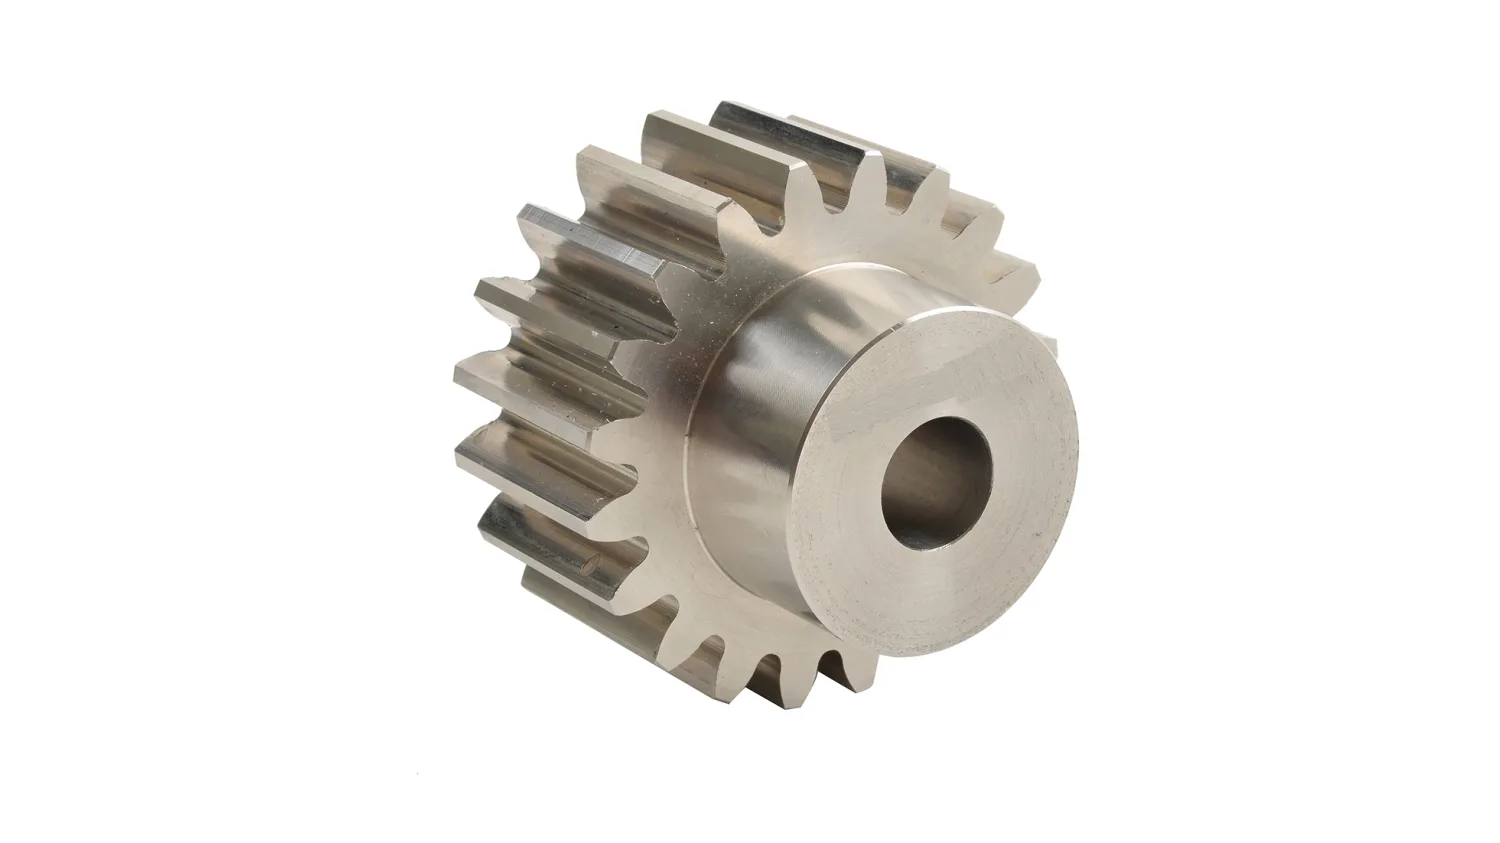 2-Mod-x-69-Tooth-Metric-Spur-Gear-in-Steel